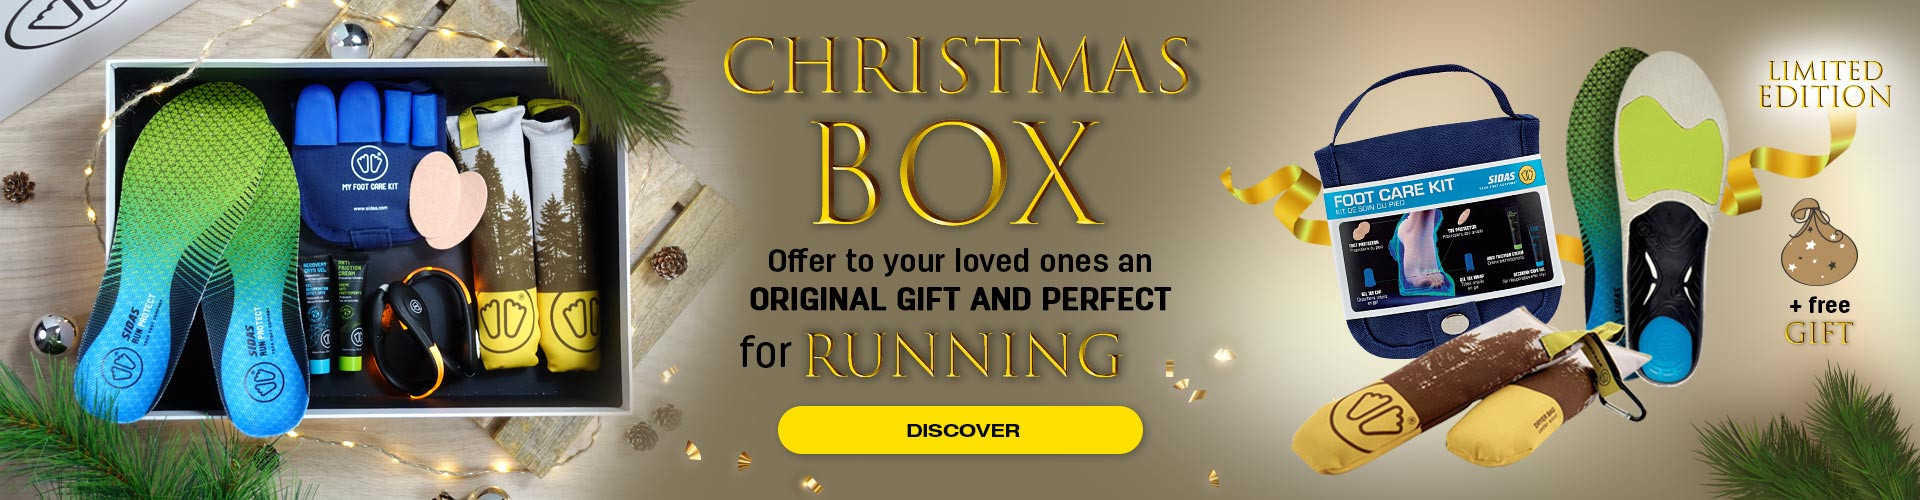 Discover our Christmas Running box with a free gift inside!